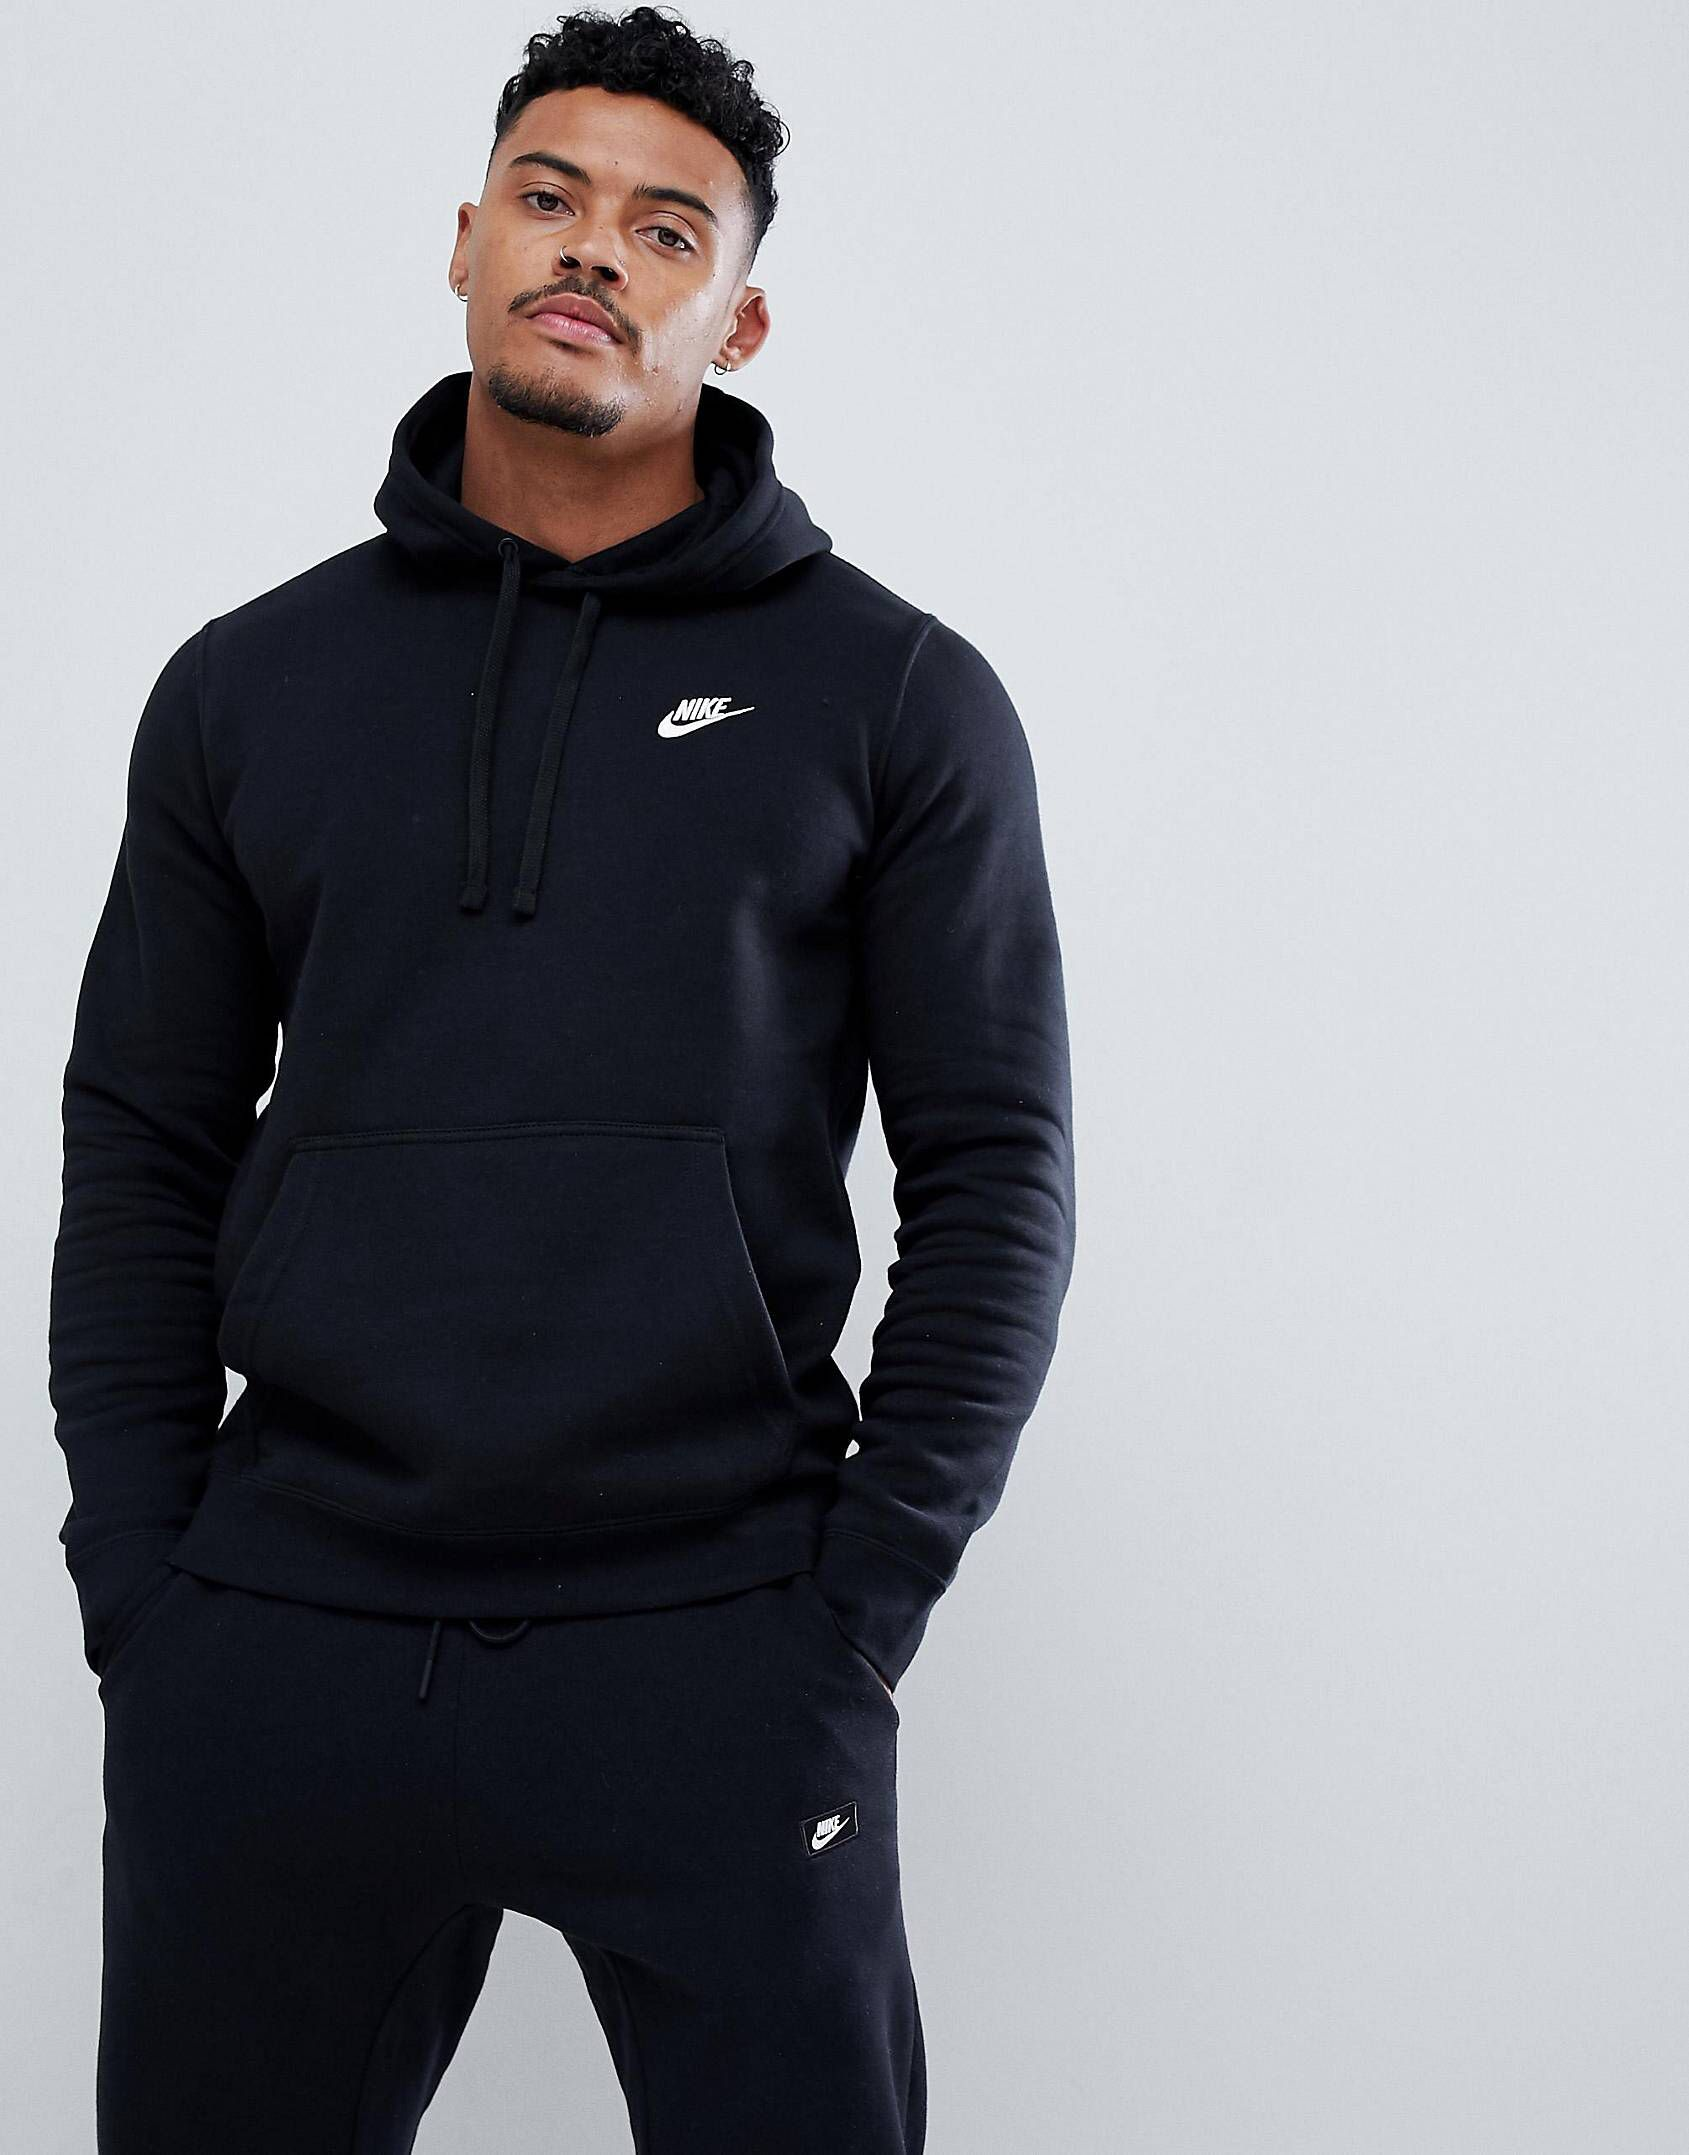 Pin By Ashley Frank On Cwtd Costumes Nike Hoodie Outfit Mens Sweatshirts Hoodie Nike Clothes Mens [ 2155 x 1689 Pixel ]